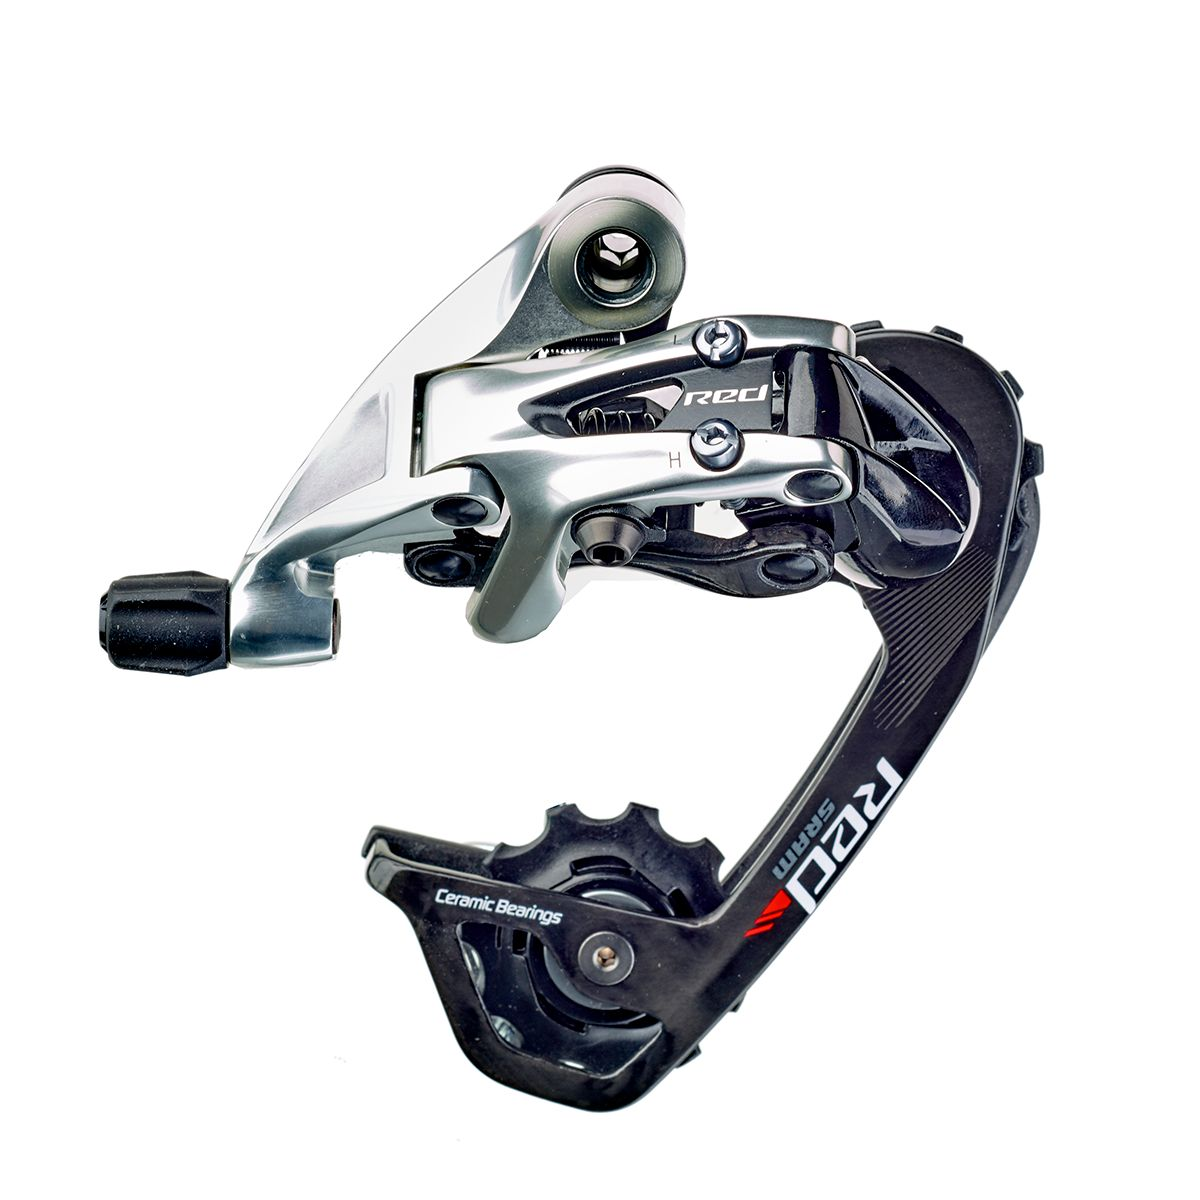 Red 22 rear derailleur